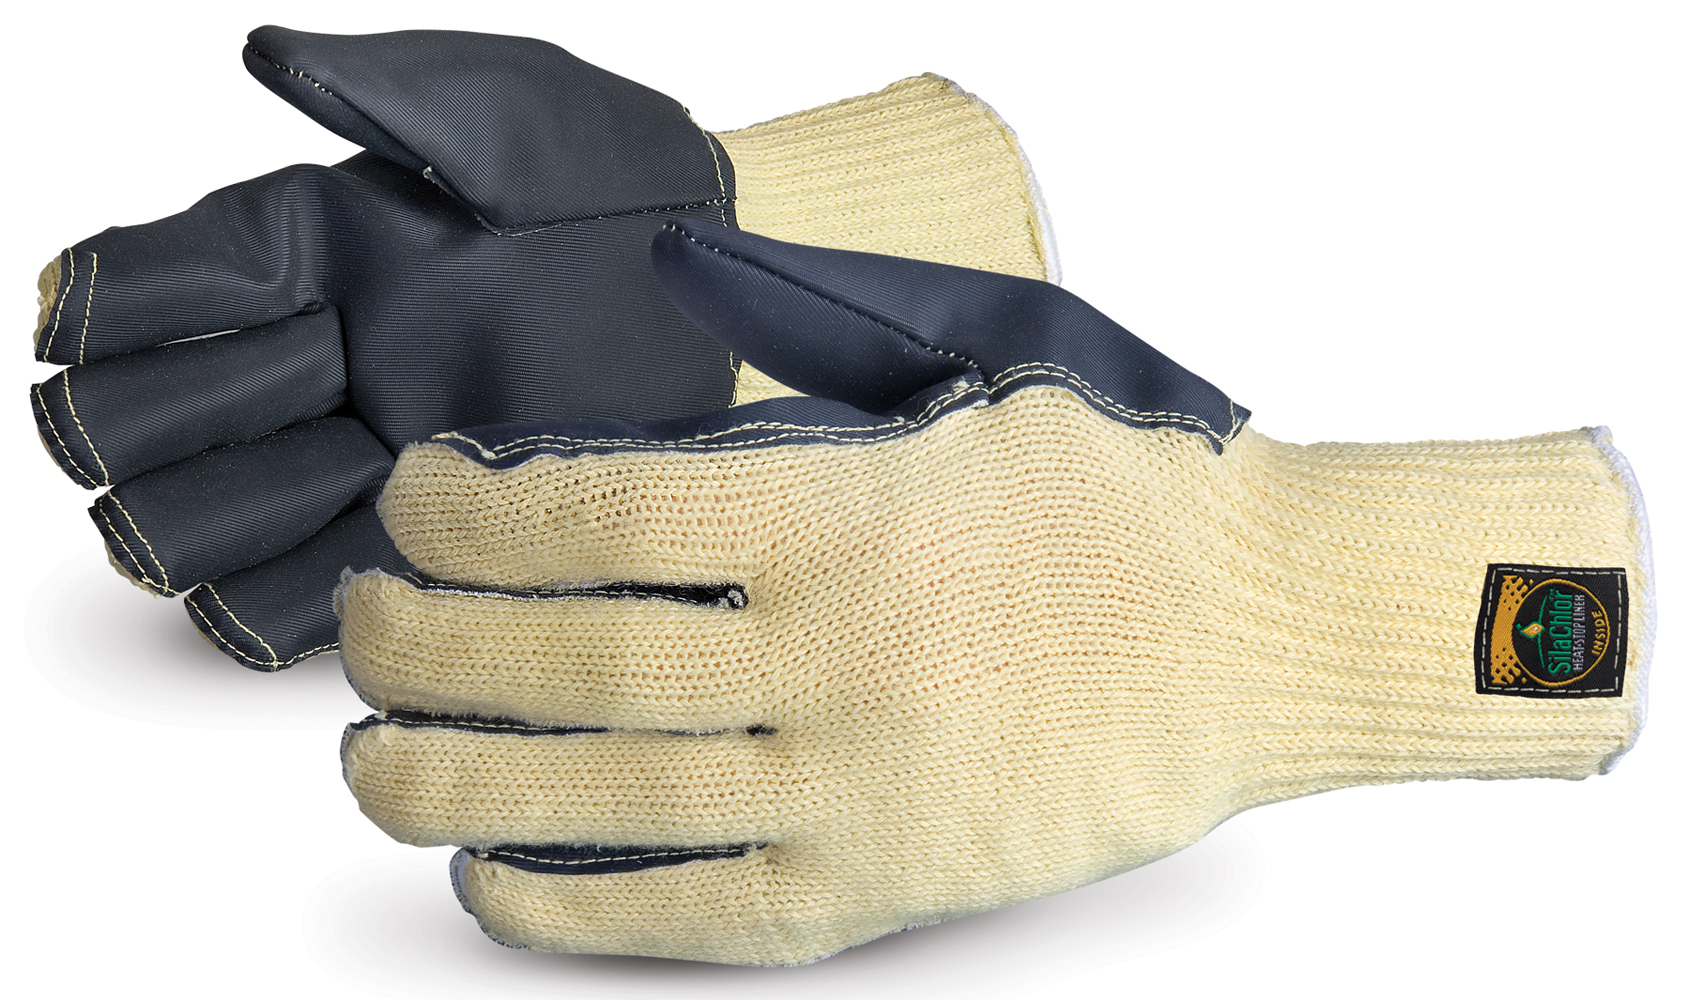 COOL GRIP HEAT-RESISTANT STRING-KNIT GLOVE - SUSKSCTB